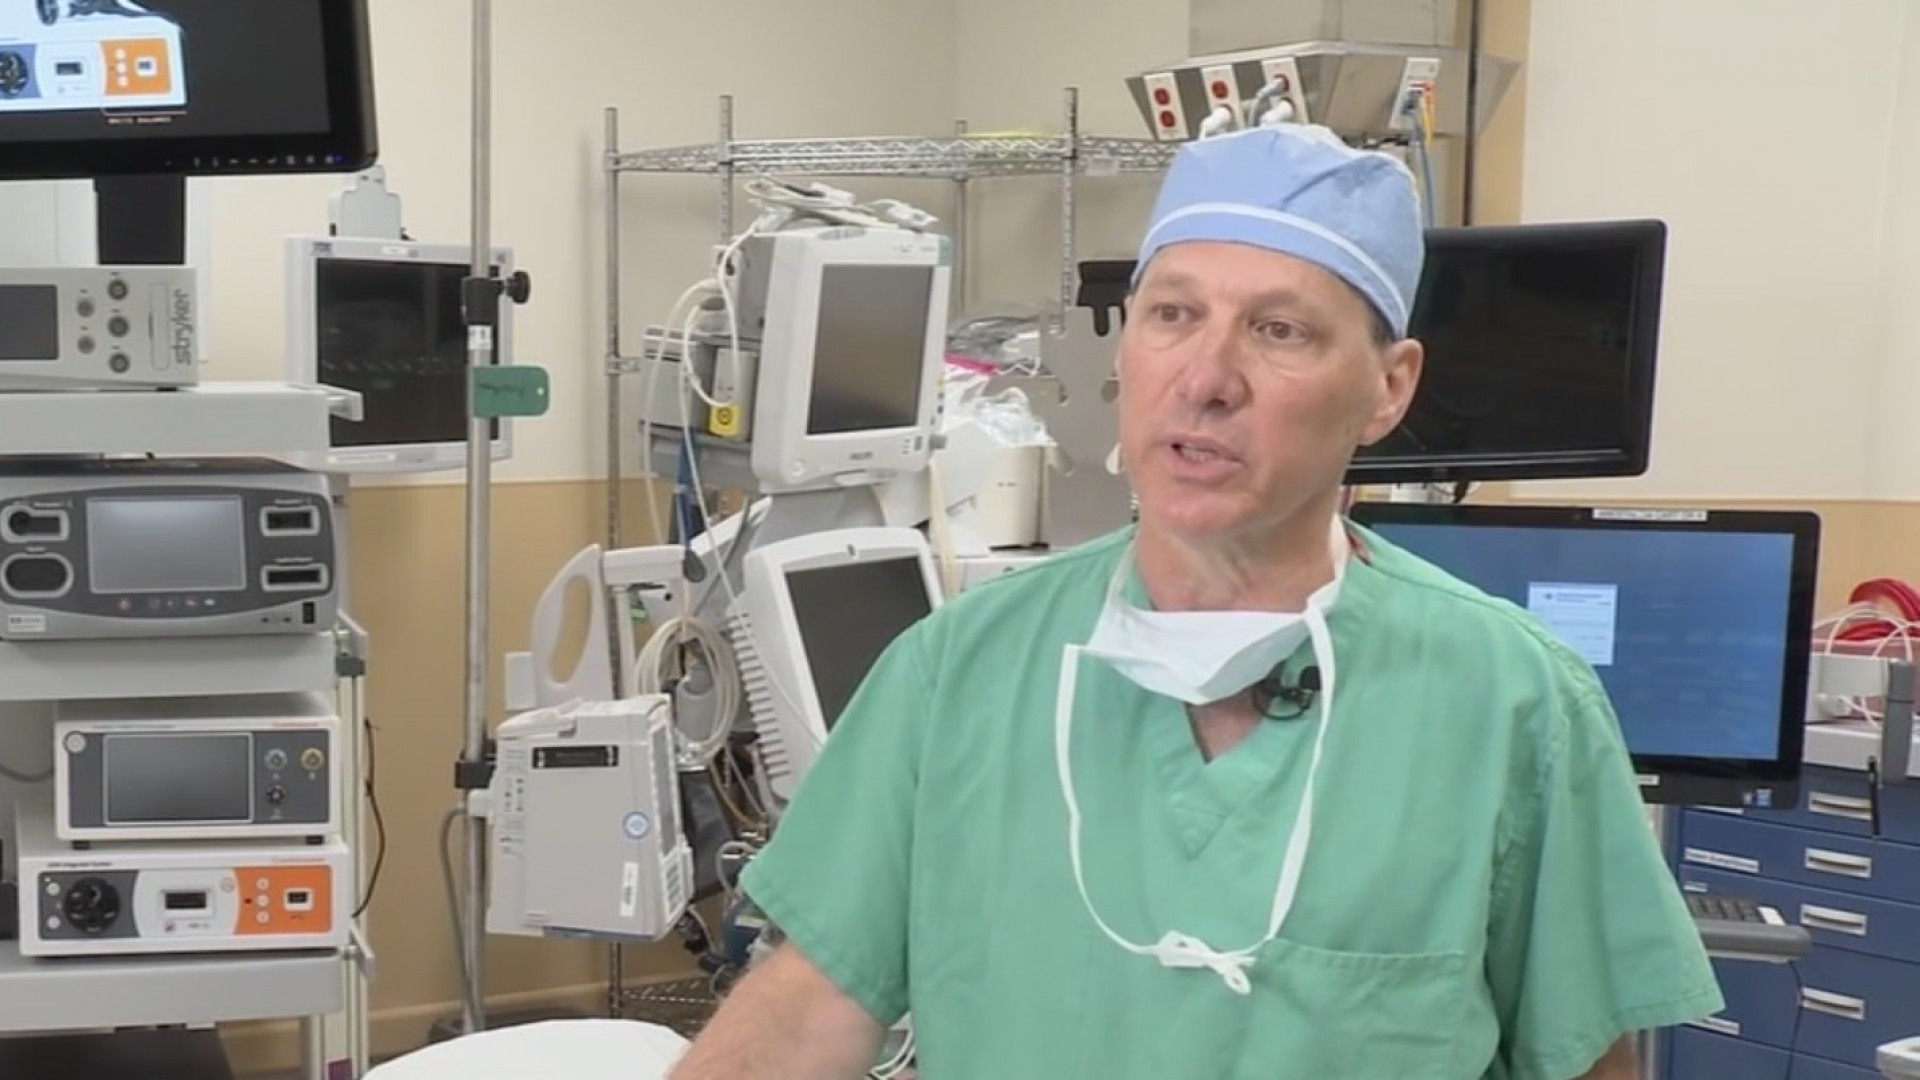 Surgeon_warns_about_high_death_rate_asso_0_20181030042332